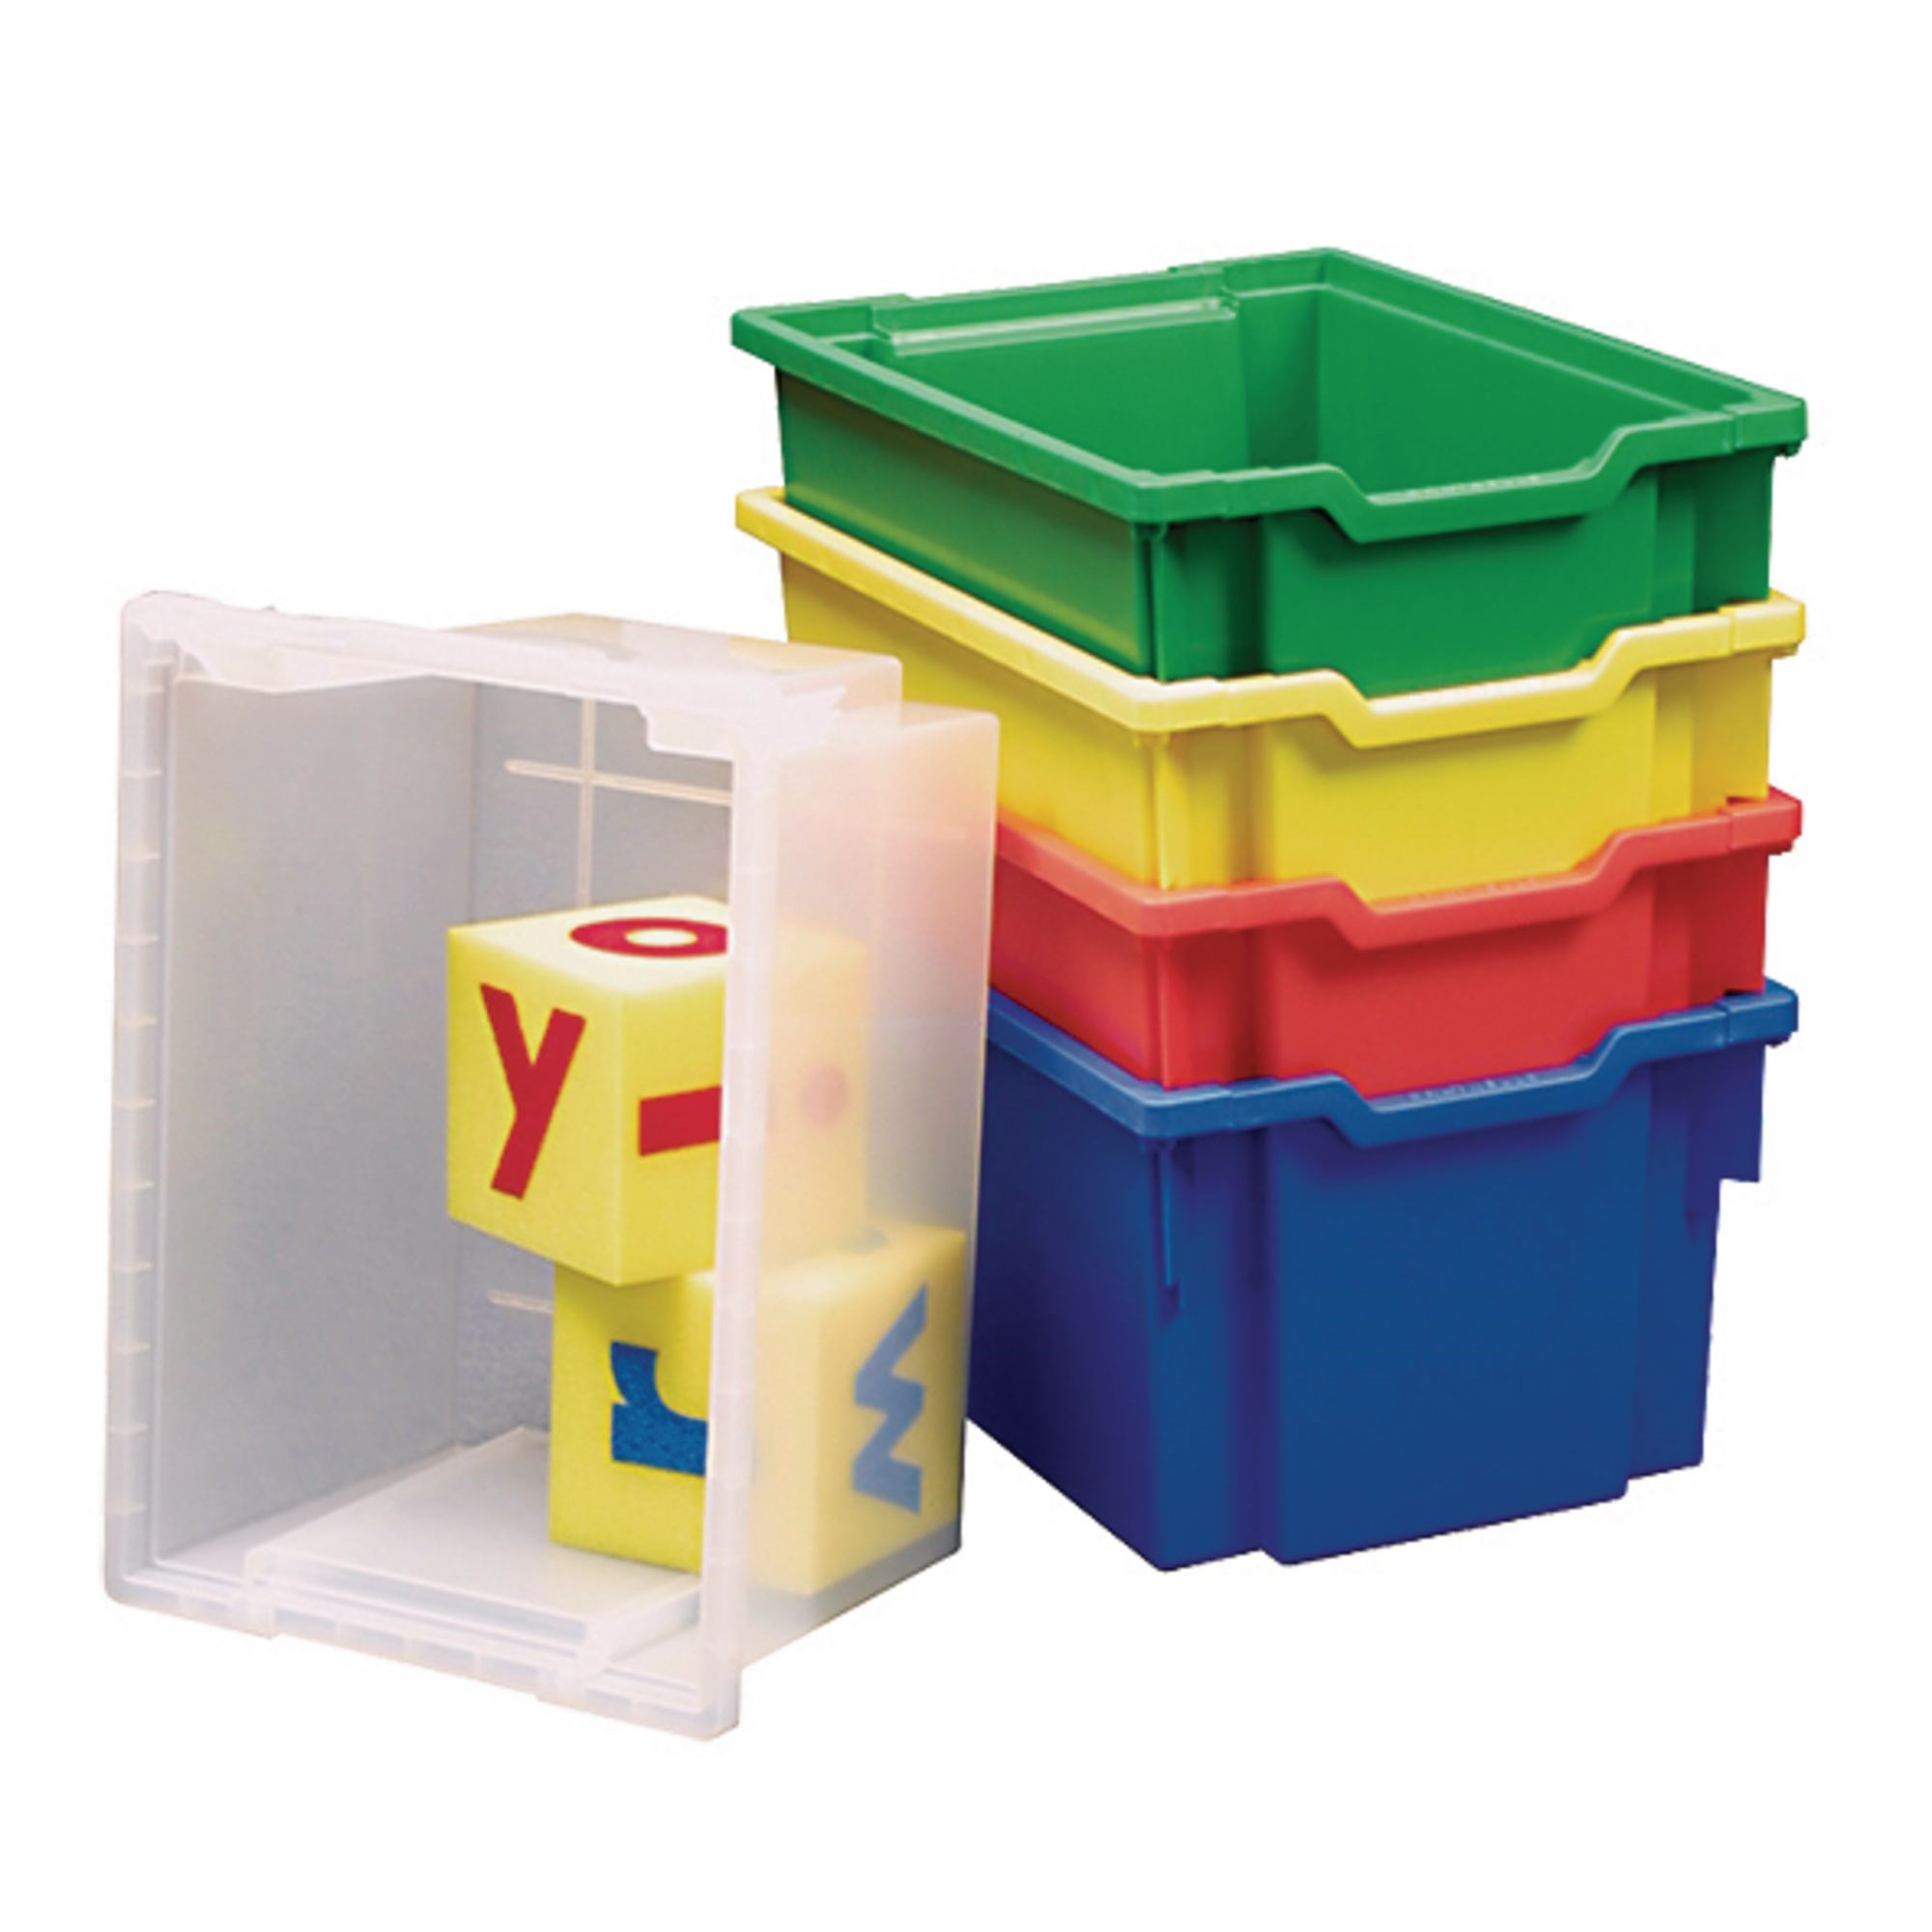 Gratnells Extra Deep Storage Tray - Green